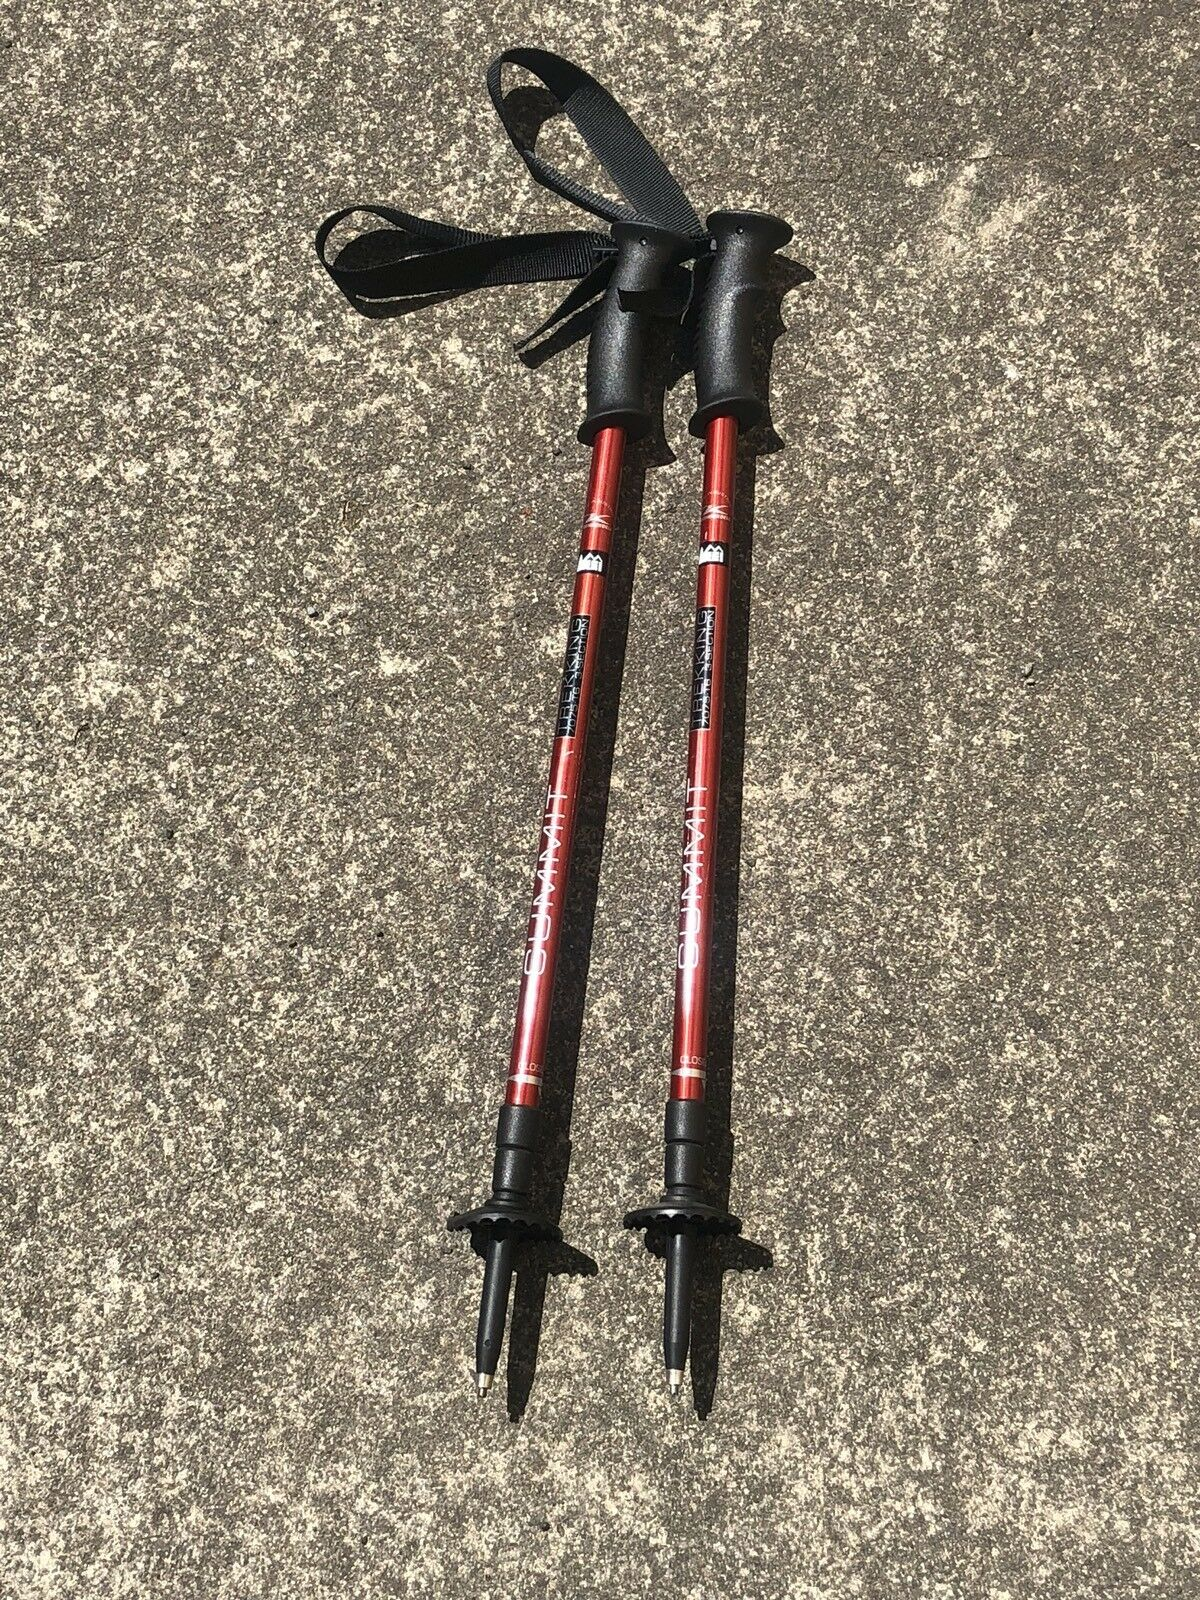 REI (Summit) Trekking Poles 7075 T6, 3 Section Telescoping, Komperdell Austria